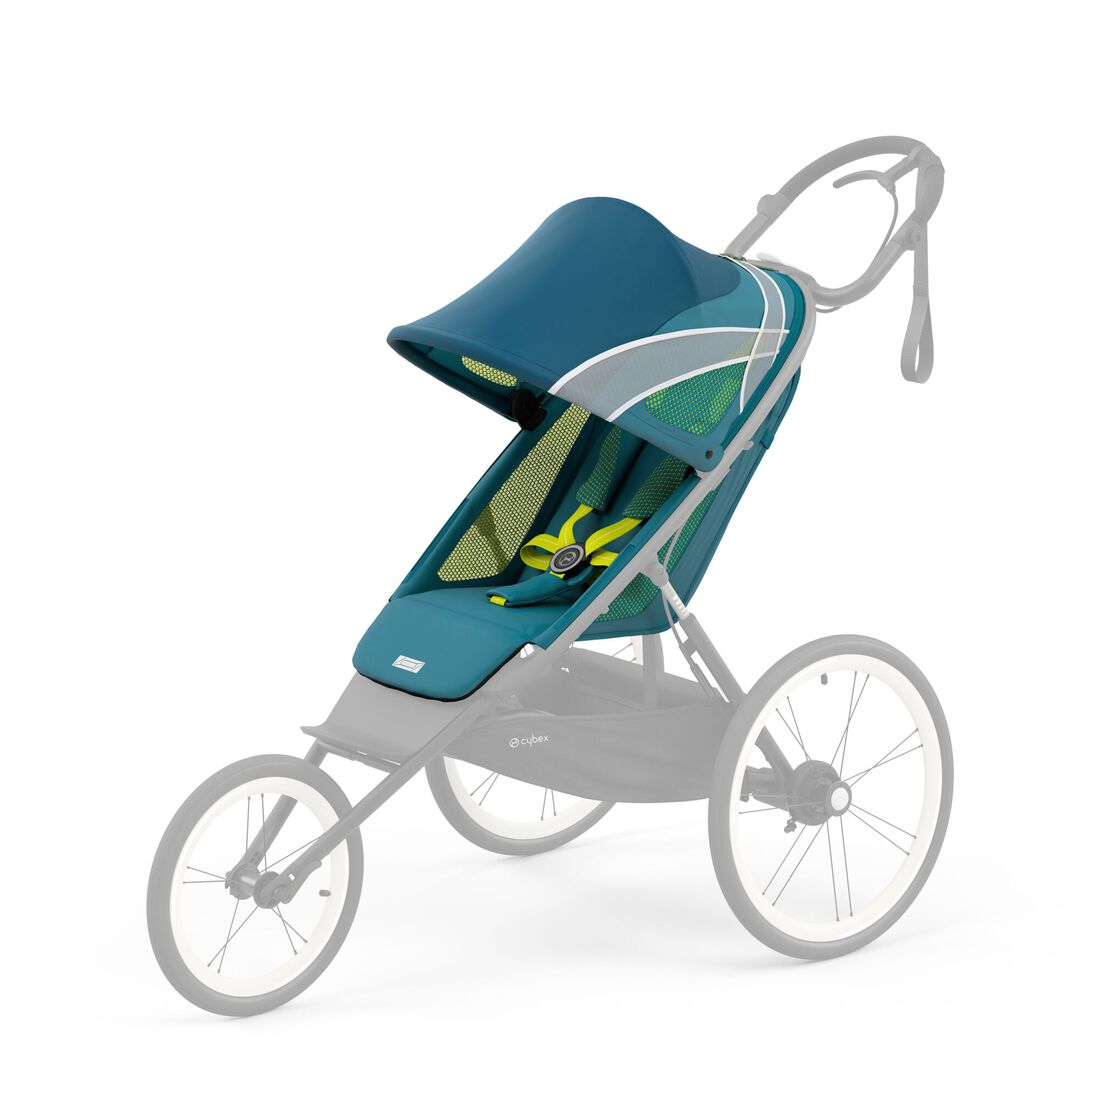 CYBEX Avi Seat Pack - Maliblue in Maliblue large image number 1